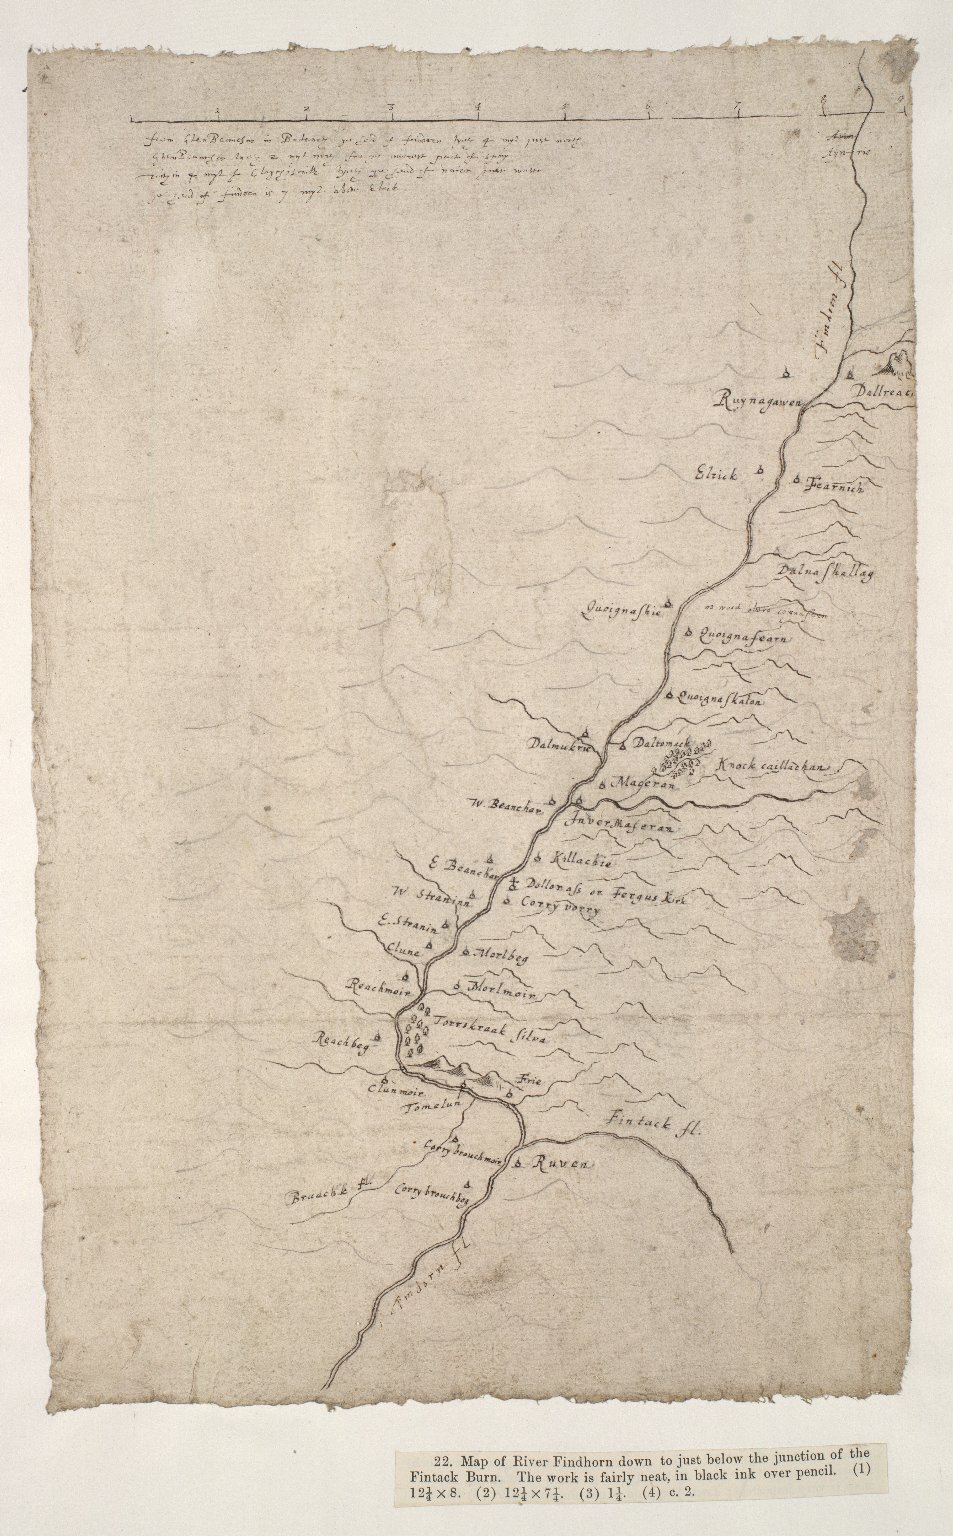 [Map of the River Findhorn down to just below the junction of the Fintack Burn] [1 of 1]